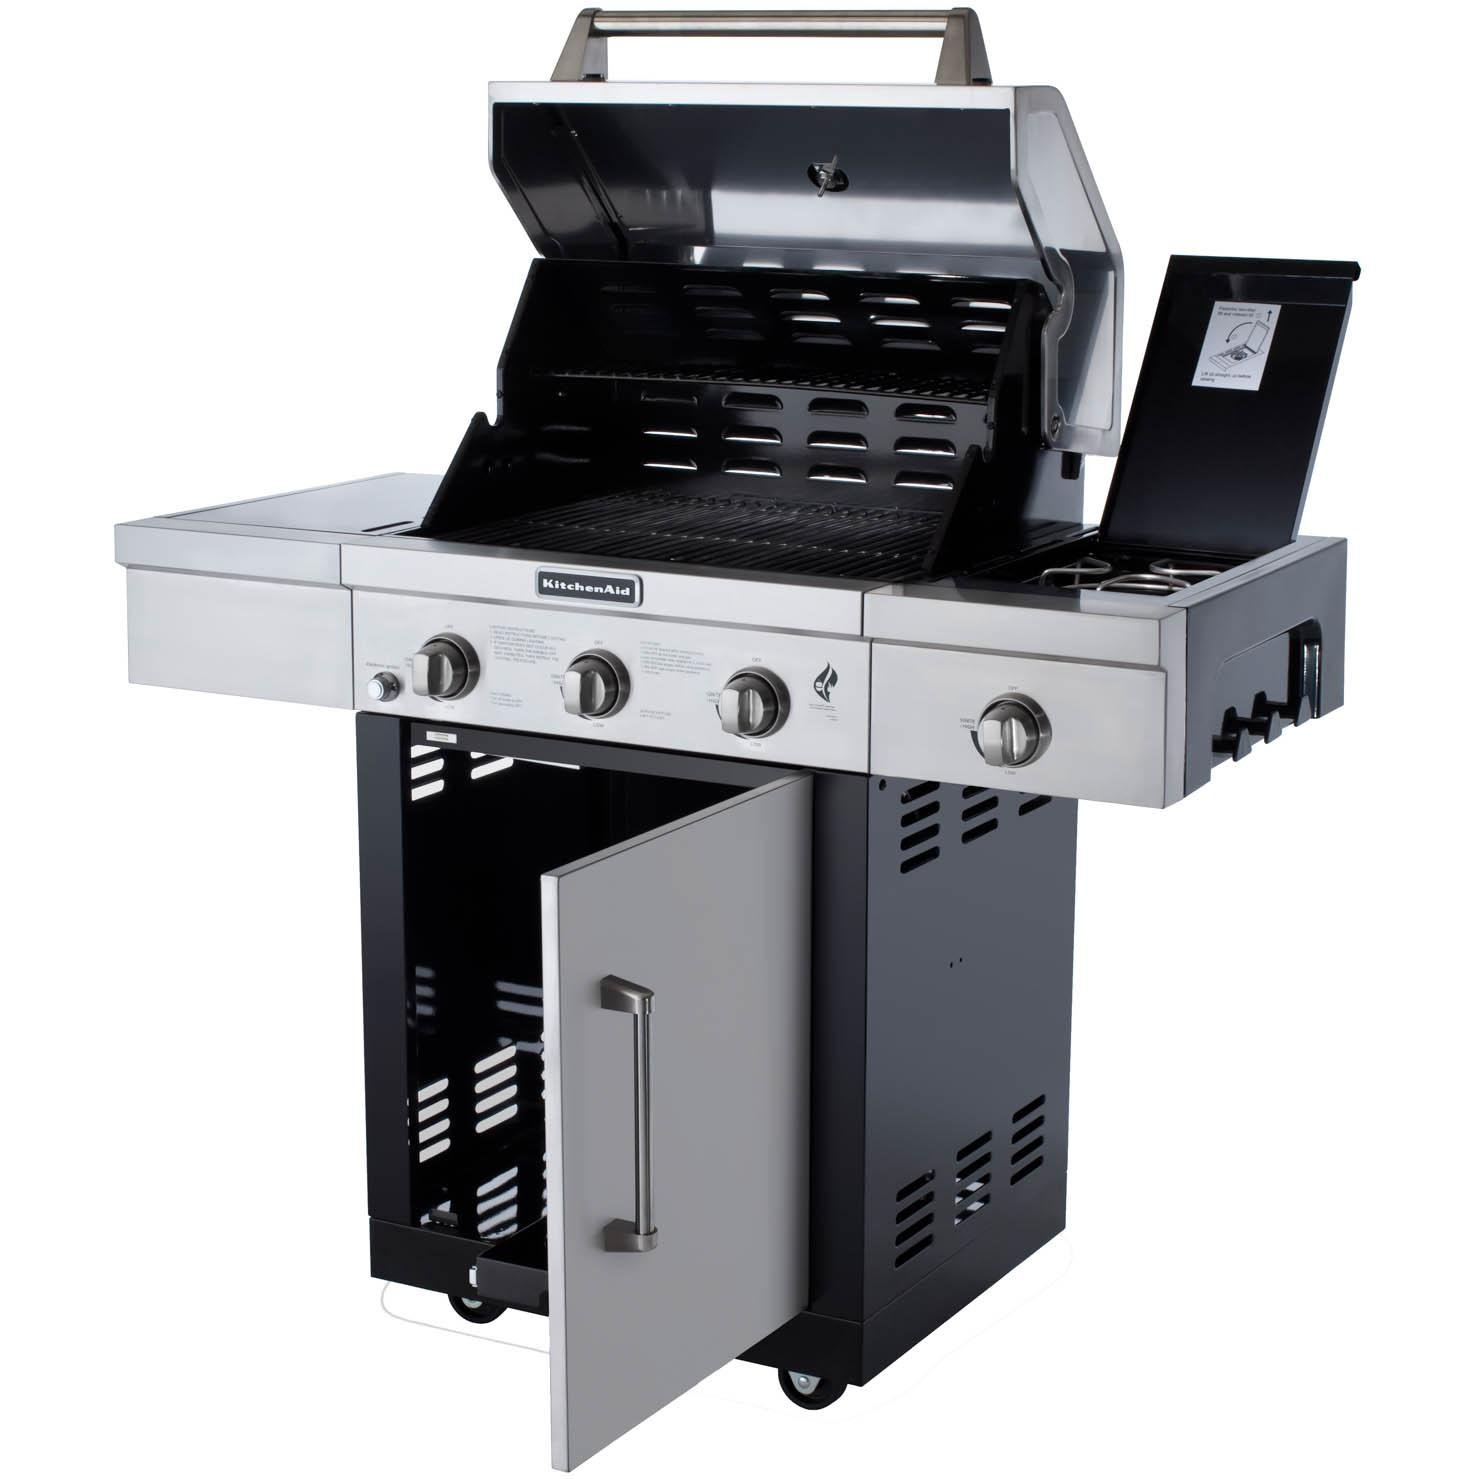 Amazon.com: 3-Burner Propane Gas Grill with Side Burner and Grill ...